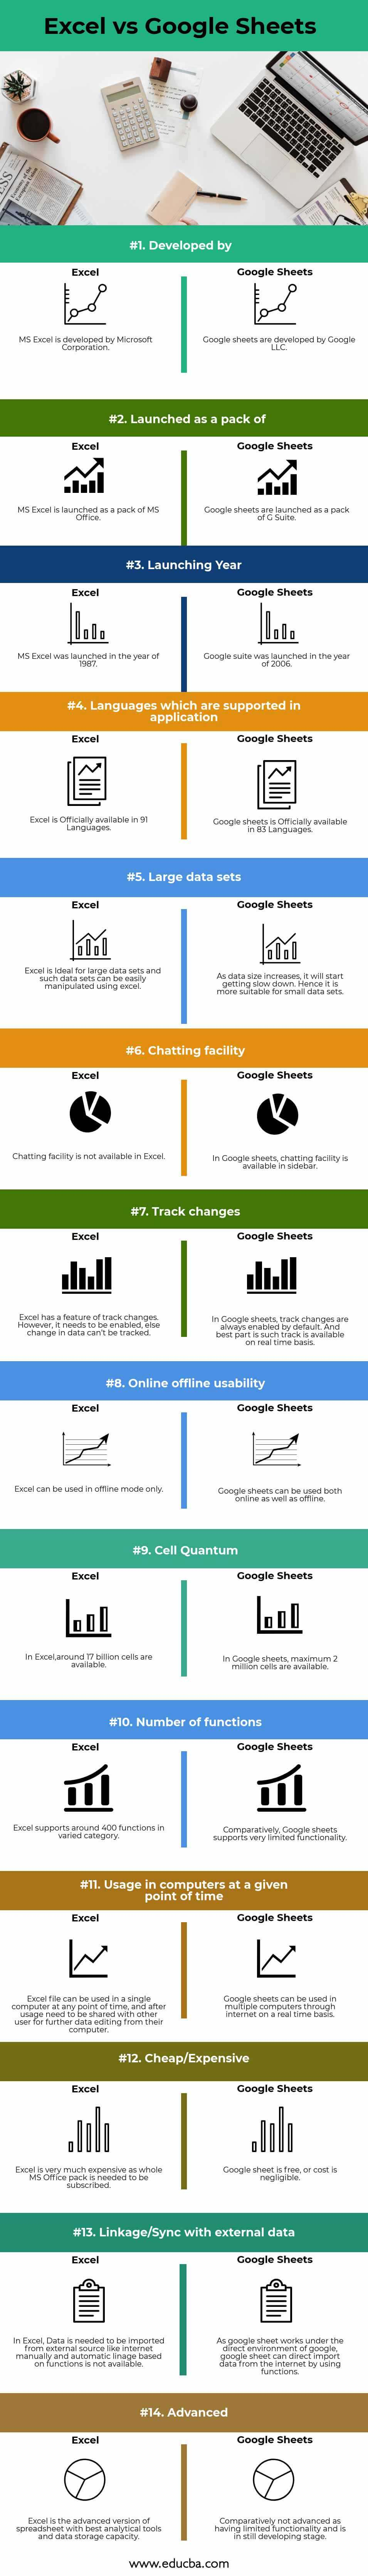 Excel vs Google Sheets Infography